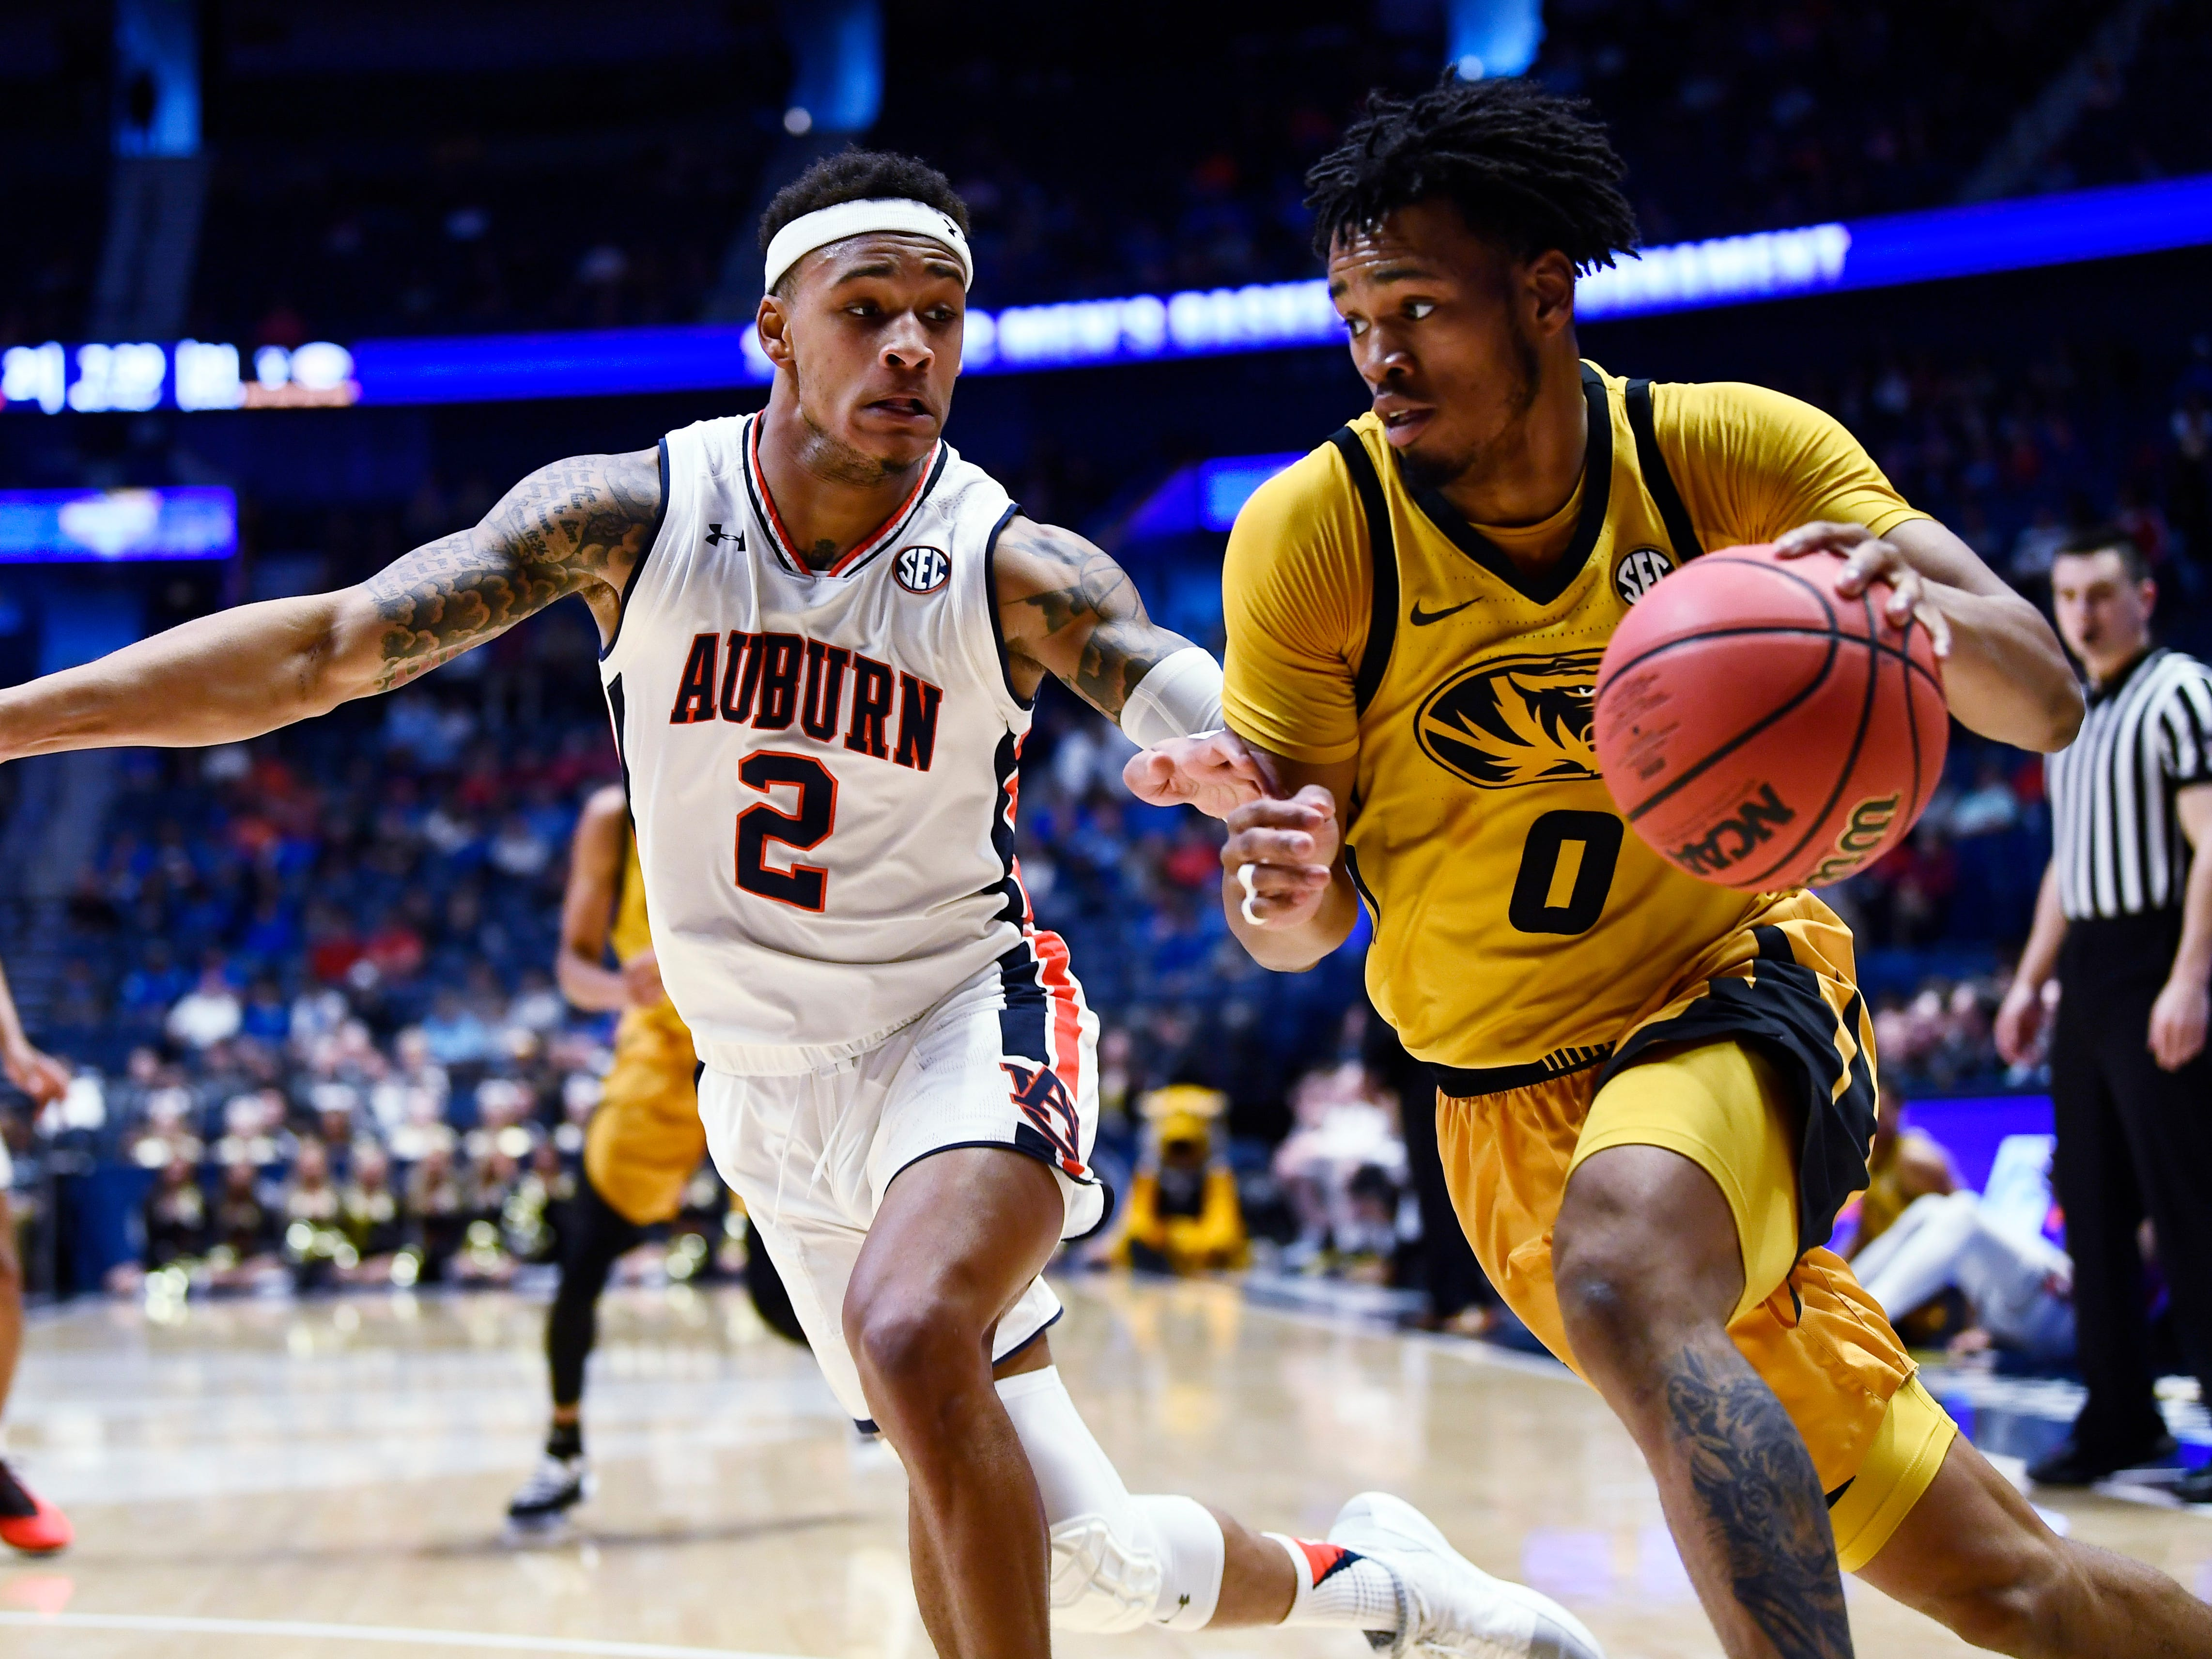 Missouri guard Torrence Watson (0) moves the ball defended by Auburn guard Bryce Brown (2) during the first half of the SEC Men's Basketball Tournament game at Bridgestone Arena in Nashville, Tenn., Thursday, March 14, 2019.